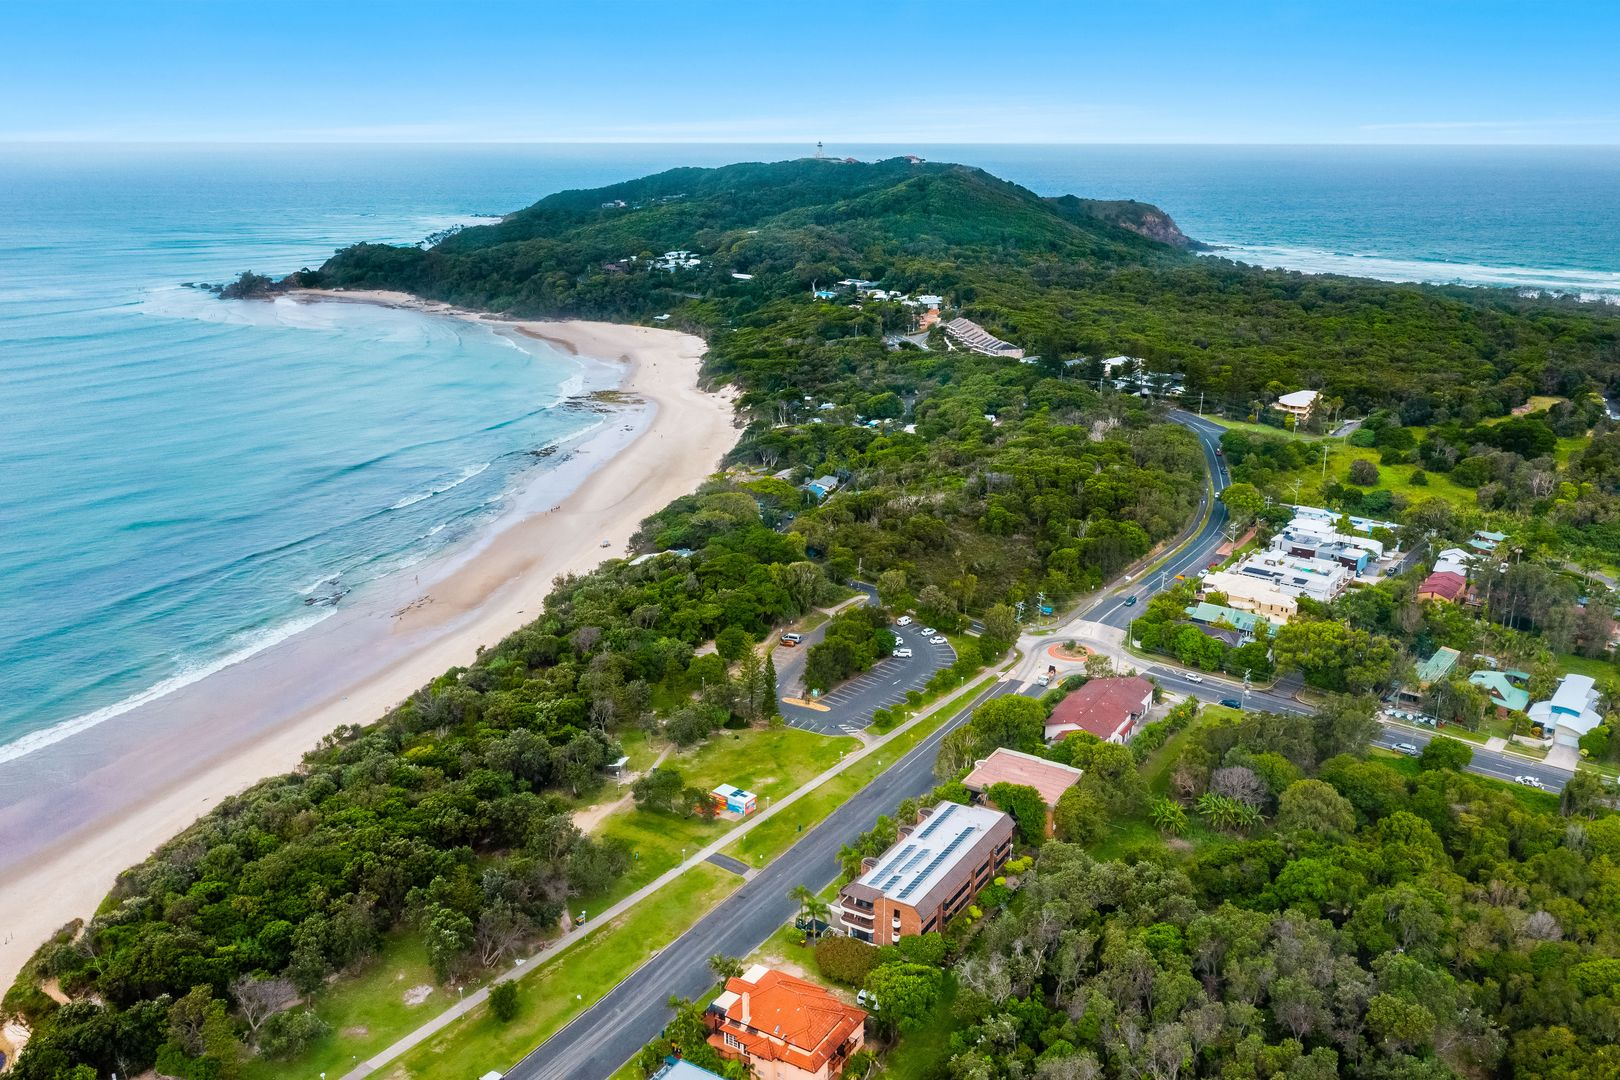 13/62-64 Lawson Street 'Pacific Apts', Byron Bay NSW 2481 ...